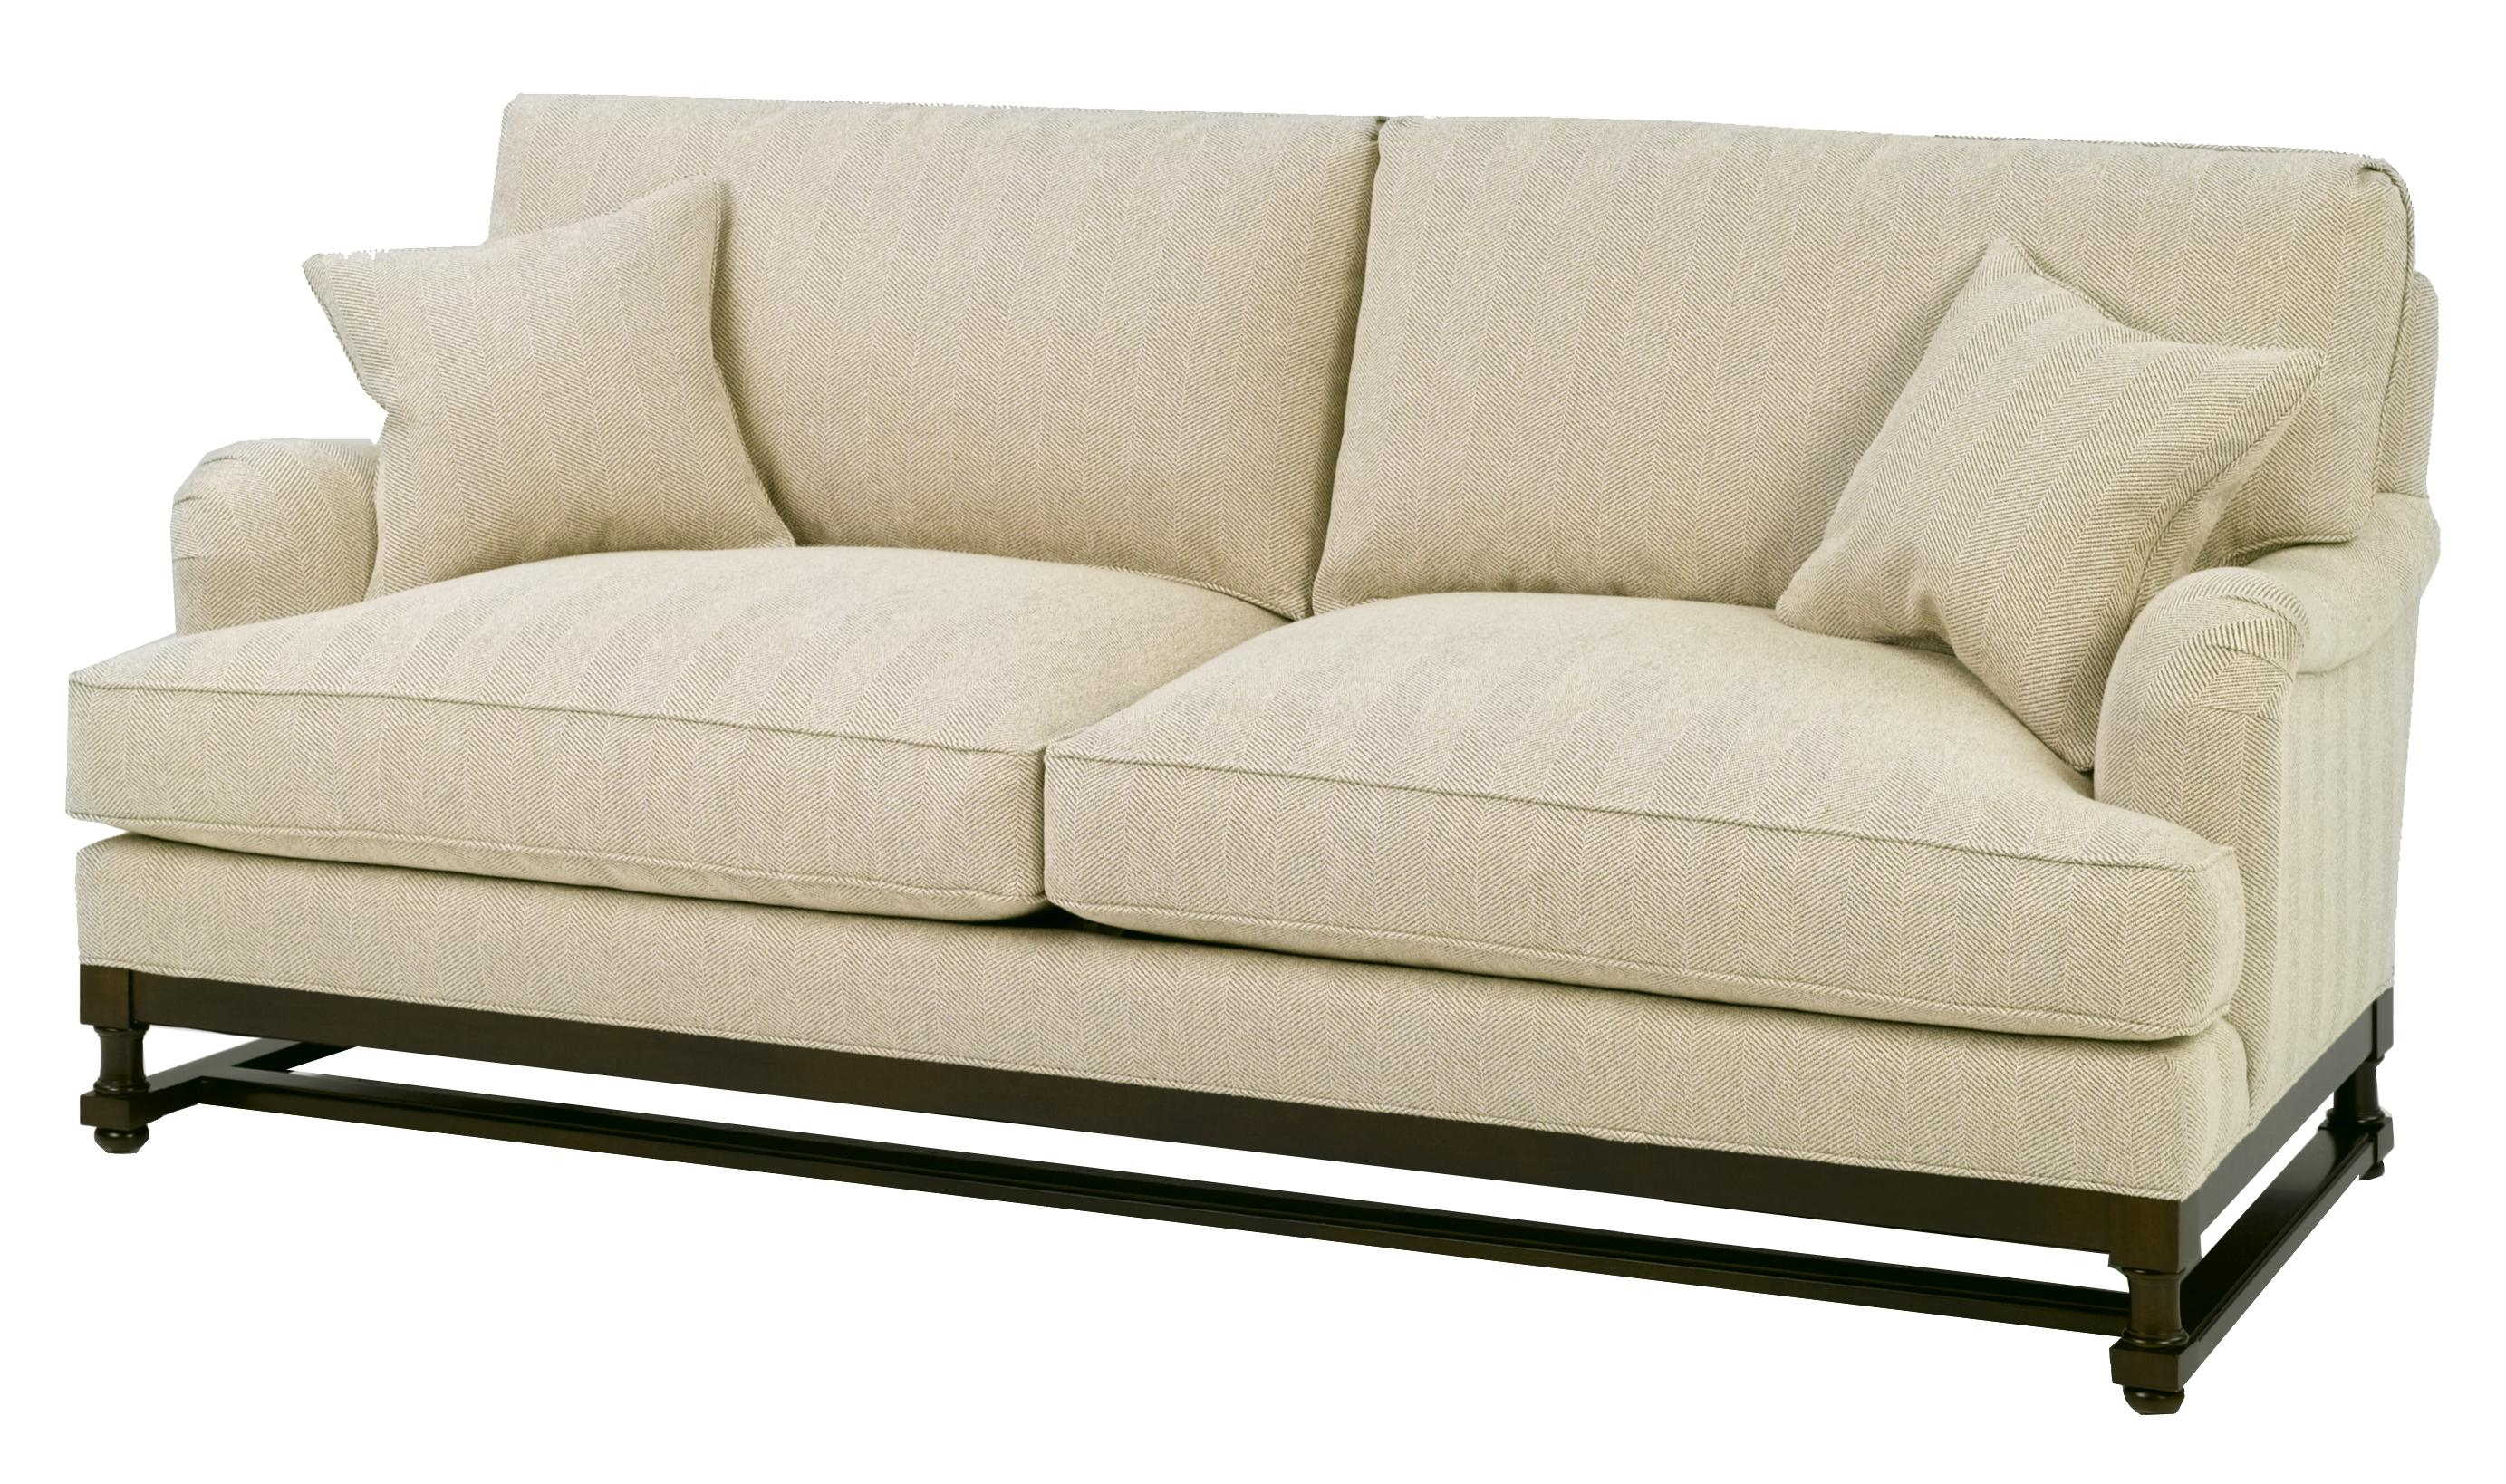 wesley sofa beige sectional bed hall 1902 stationary with wood base story